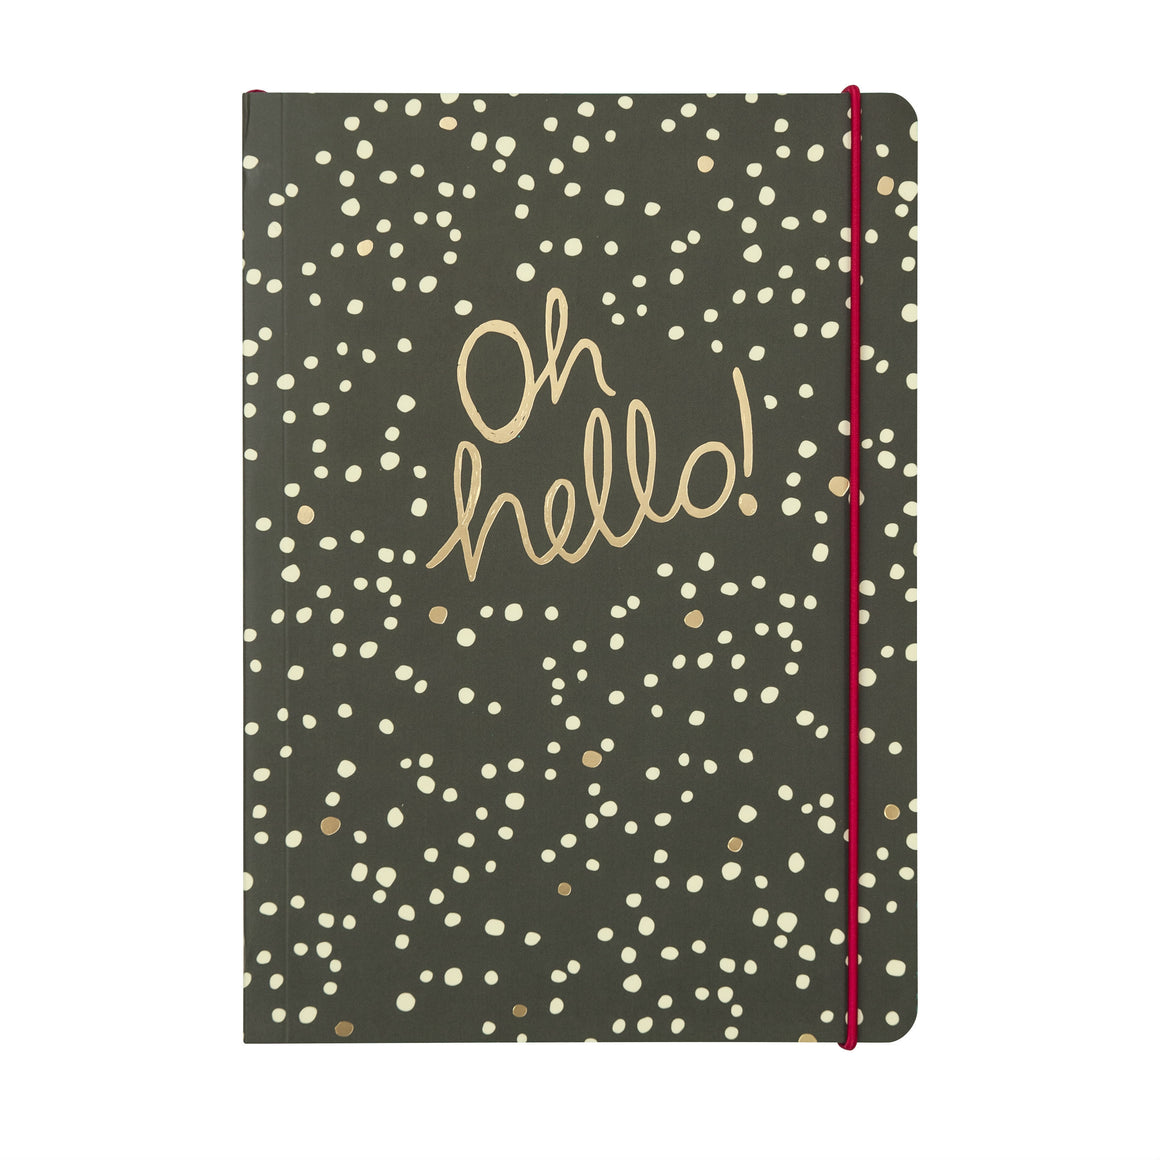 'Oh Hello!' B5 Notebook - The Love Trees